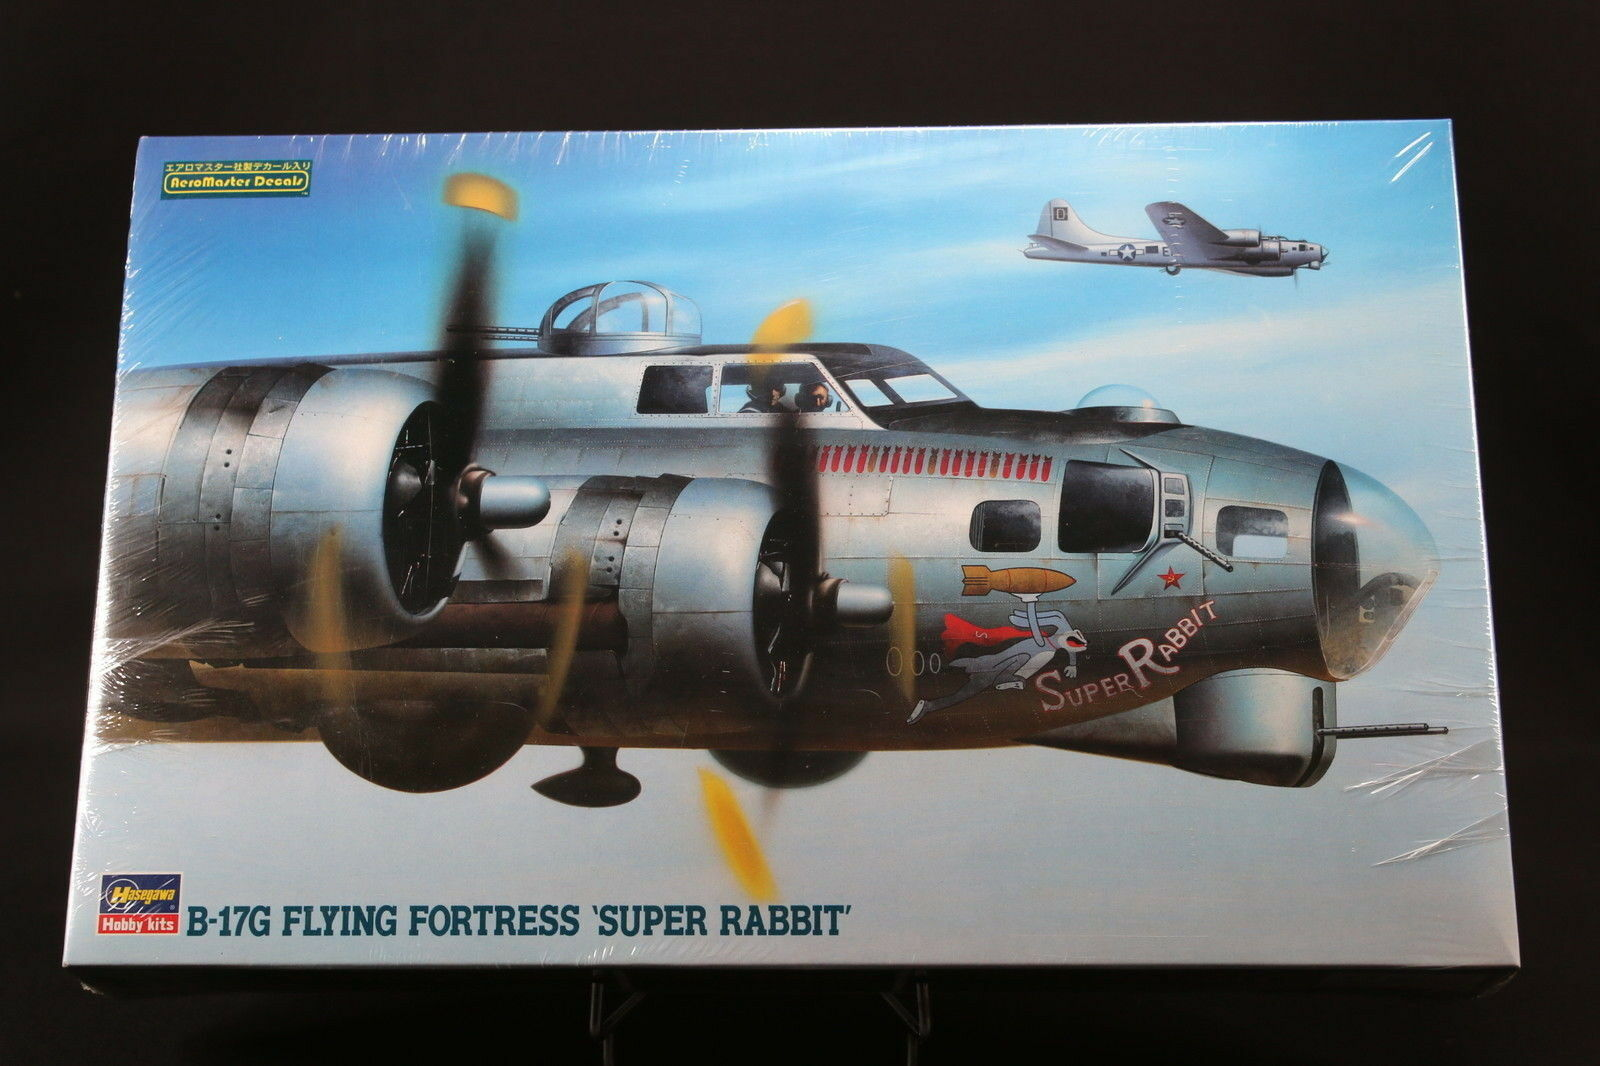 XM126 HASEGAWA 1 72 maquette avion 04066 B-17G Flying Fortress Super Rabbit